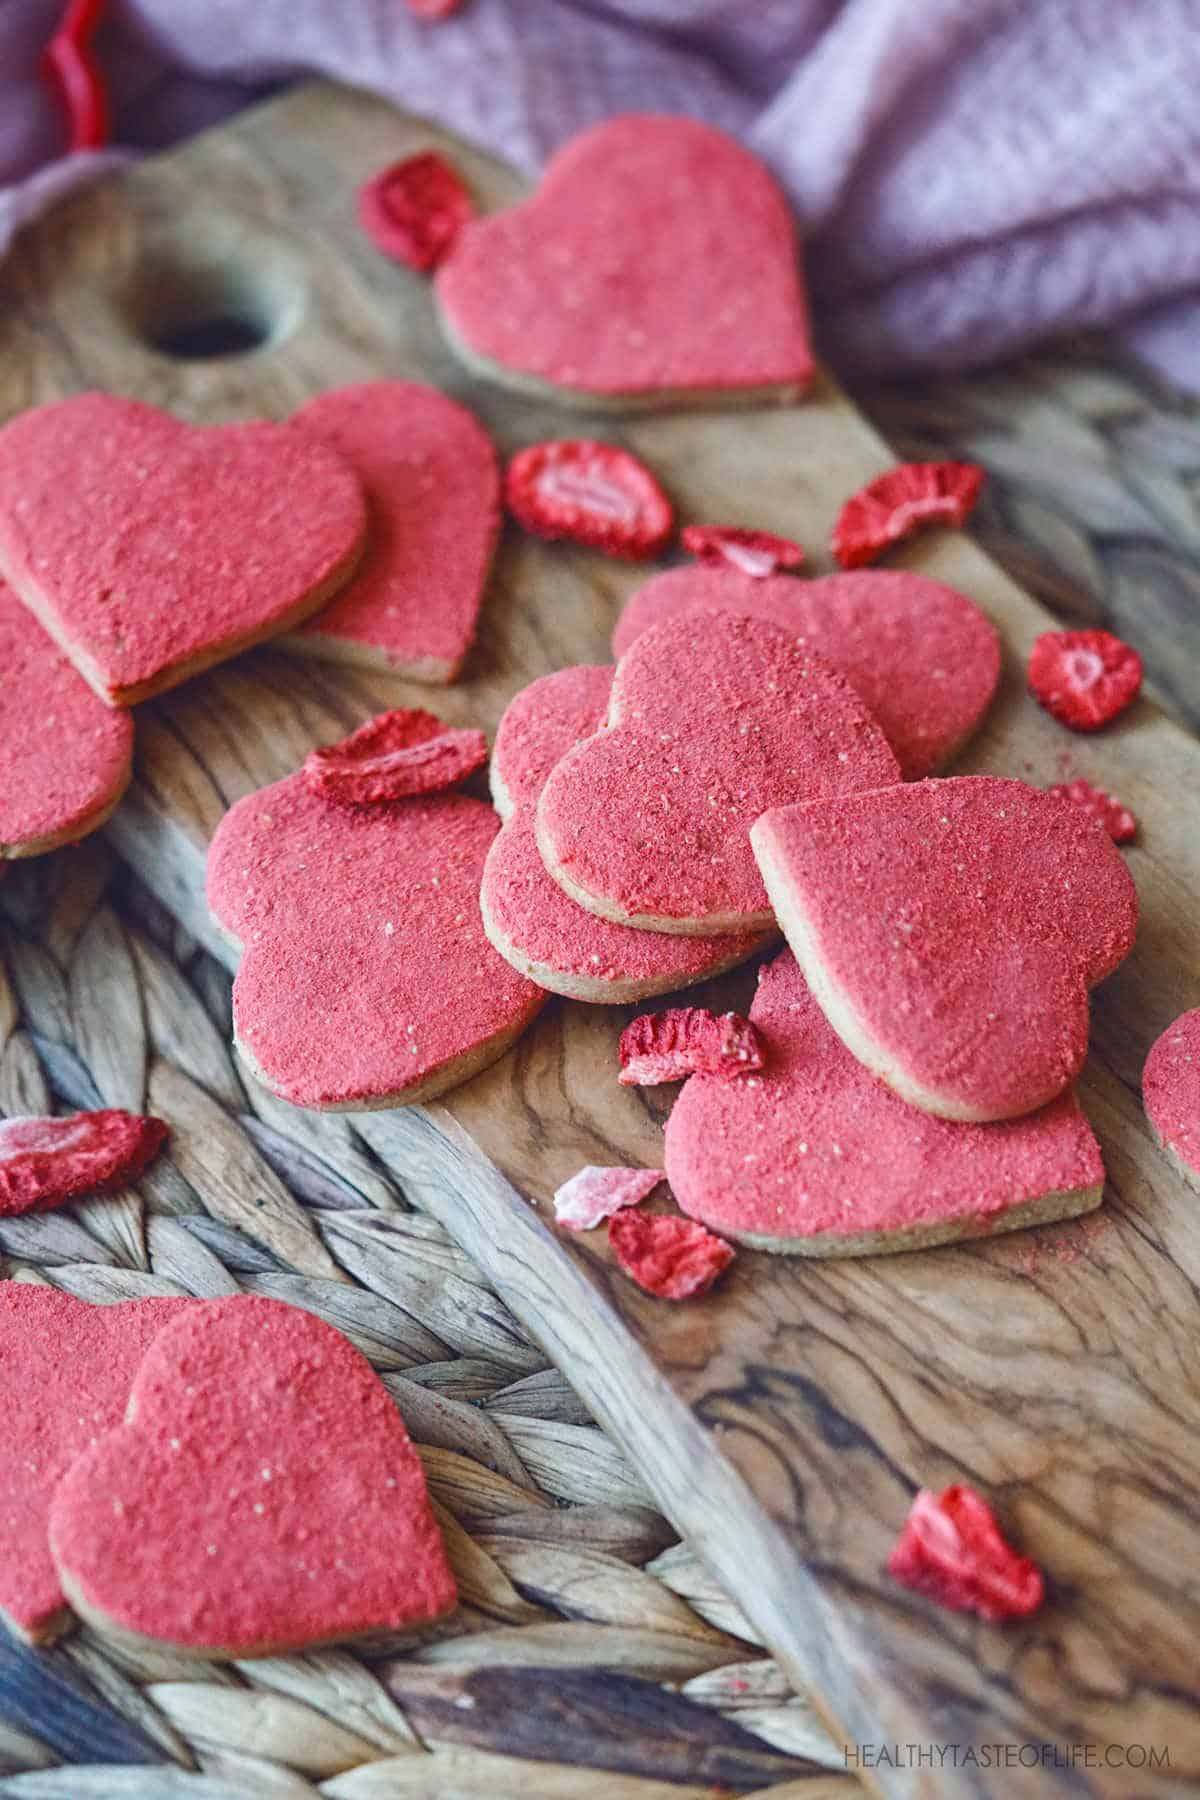 Make these healthy gluten free Valentine cookie treats for your Valentine's Day party! This heart shaped vegan gluten free cut out sugar cookies are flavored with freeze dried strawberries with a nice crisp around the edges and hints of buttery shortbread notes. #veganglutenfree #sugarcookies #valentine #heartshaped #cutoutcookies #glutenfree